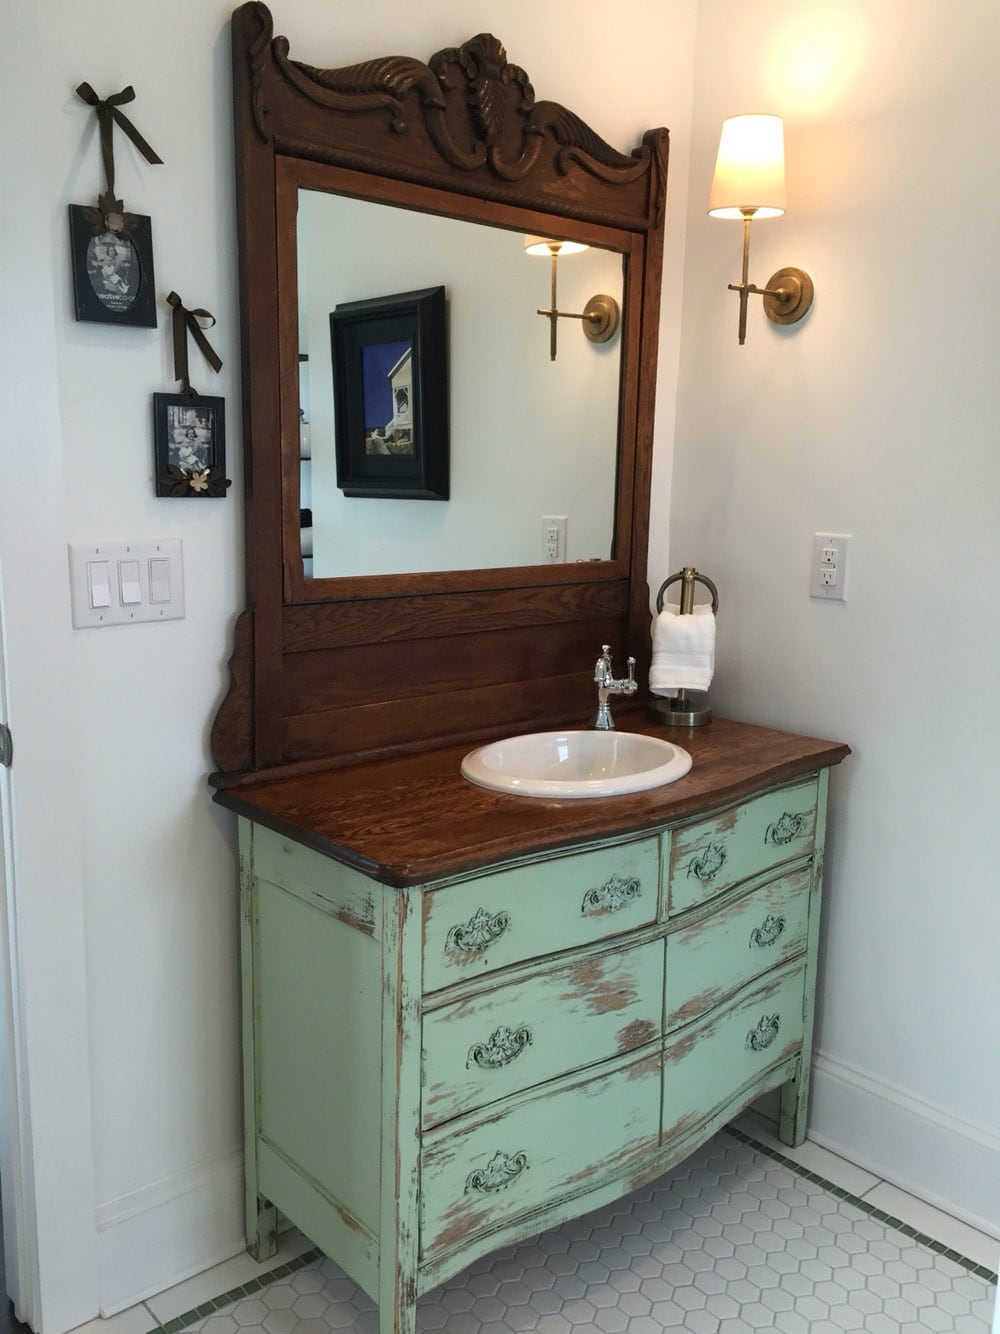 Bathroom vanity from antique dresser we find restore etsy - Type of paint for bathroom cabinets ...